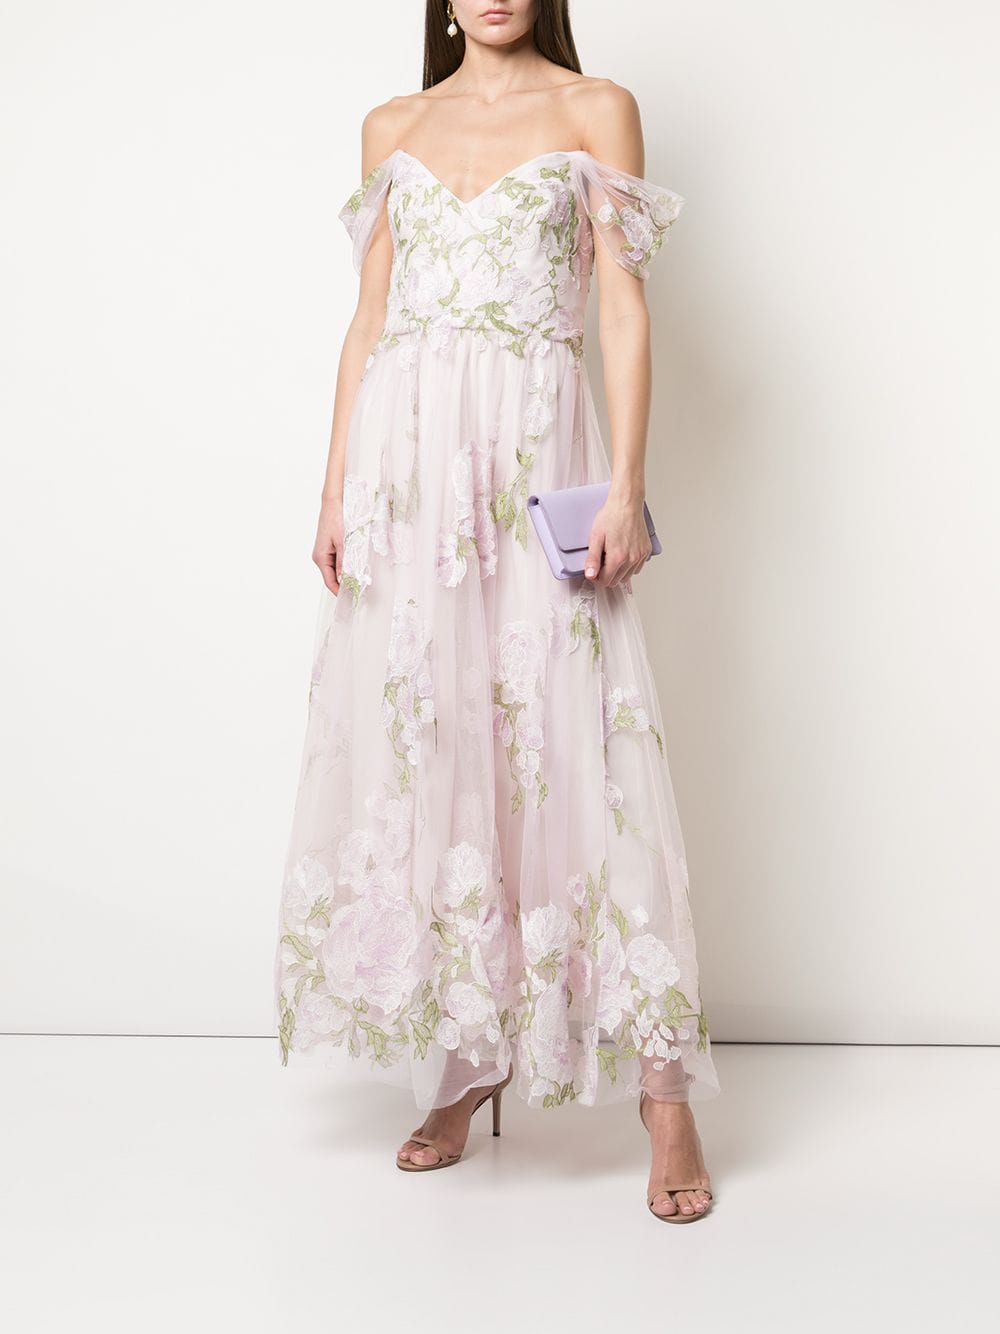 MARCHESA NOTTE Off-shoulder Floral Embroidered Gown